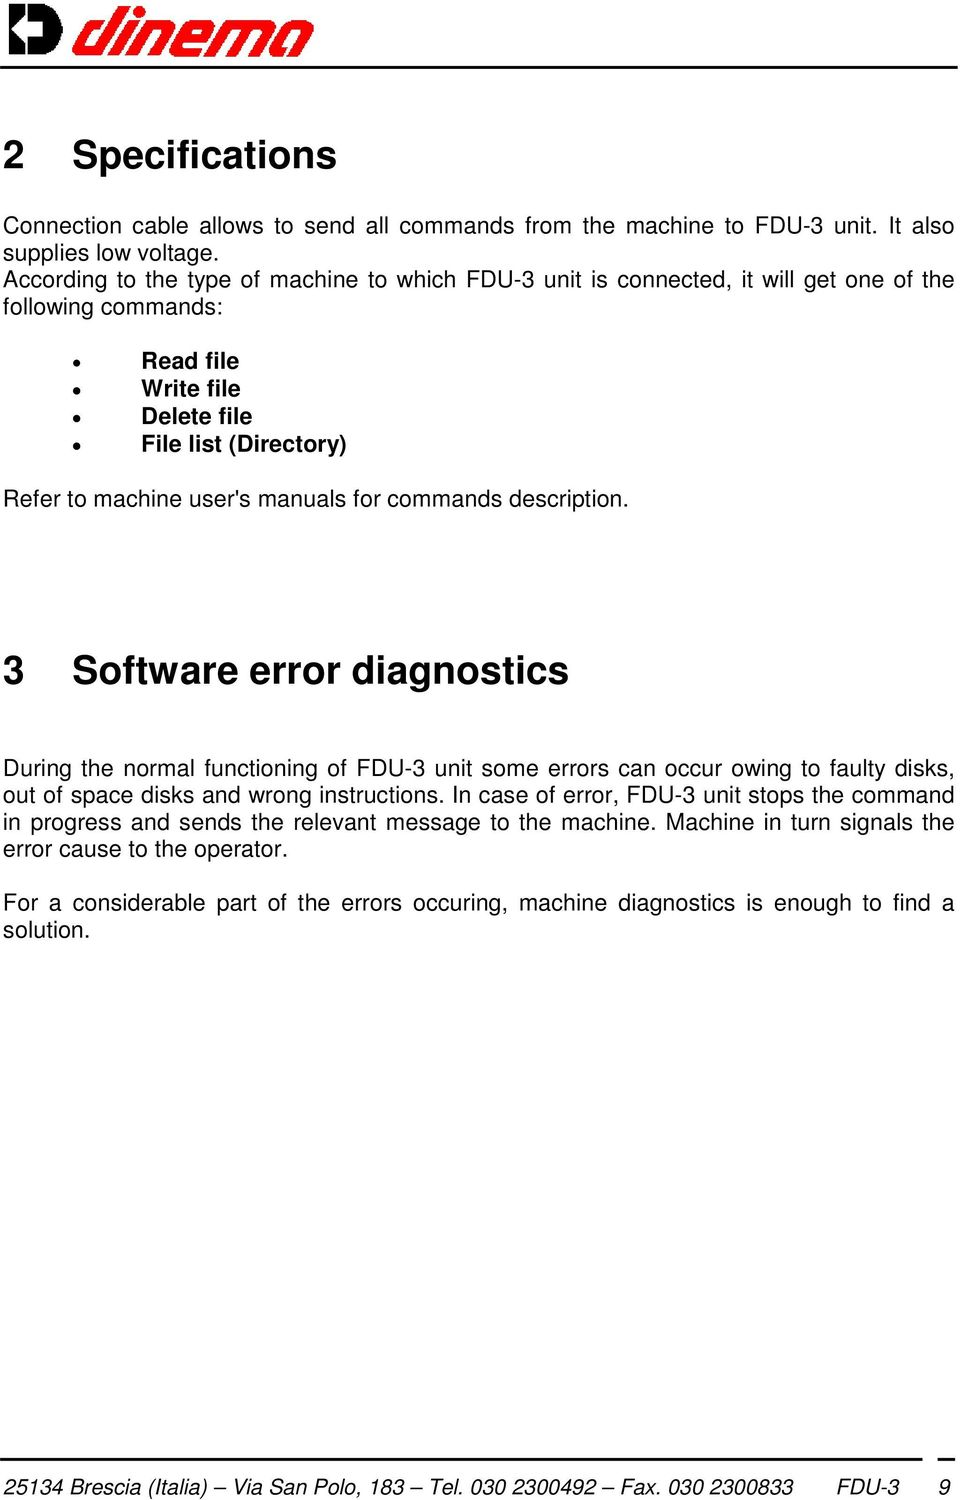 for commands description. 3 Software error diagnostics During the normal functioning of FDU-3 unit some errors can occur owing to faulty disks, out of space disks and wrong instructions.